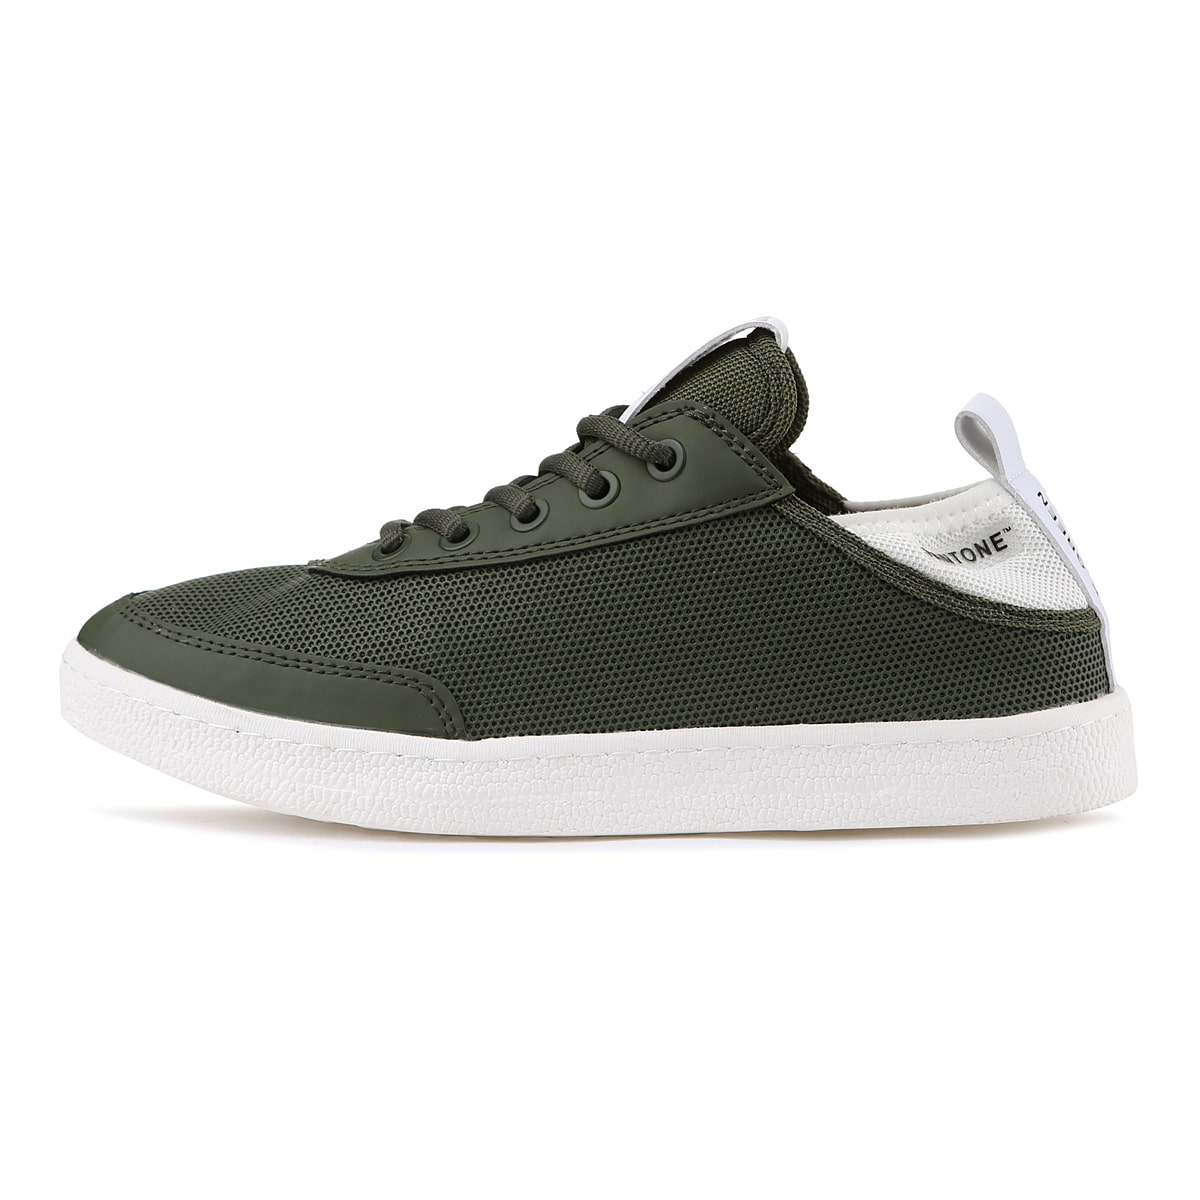 [팬톤]STAR FISH Sneakers_Rifle Green [P181SE02KK]